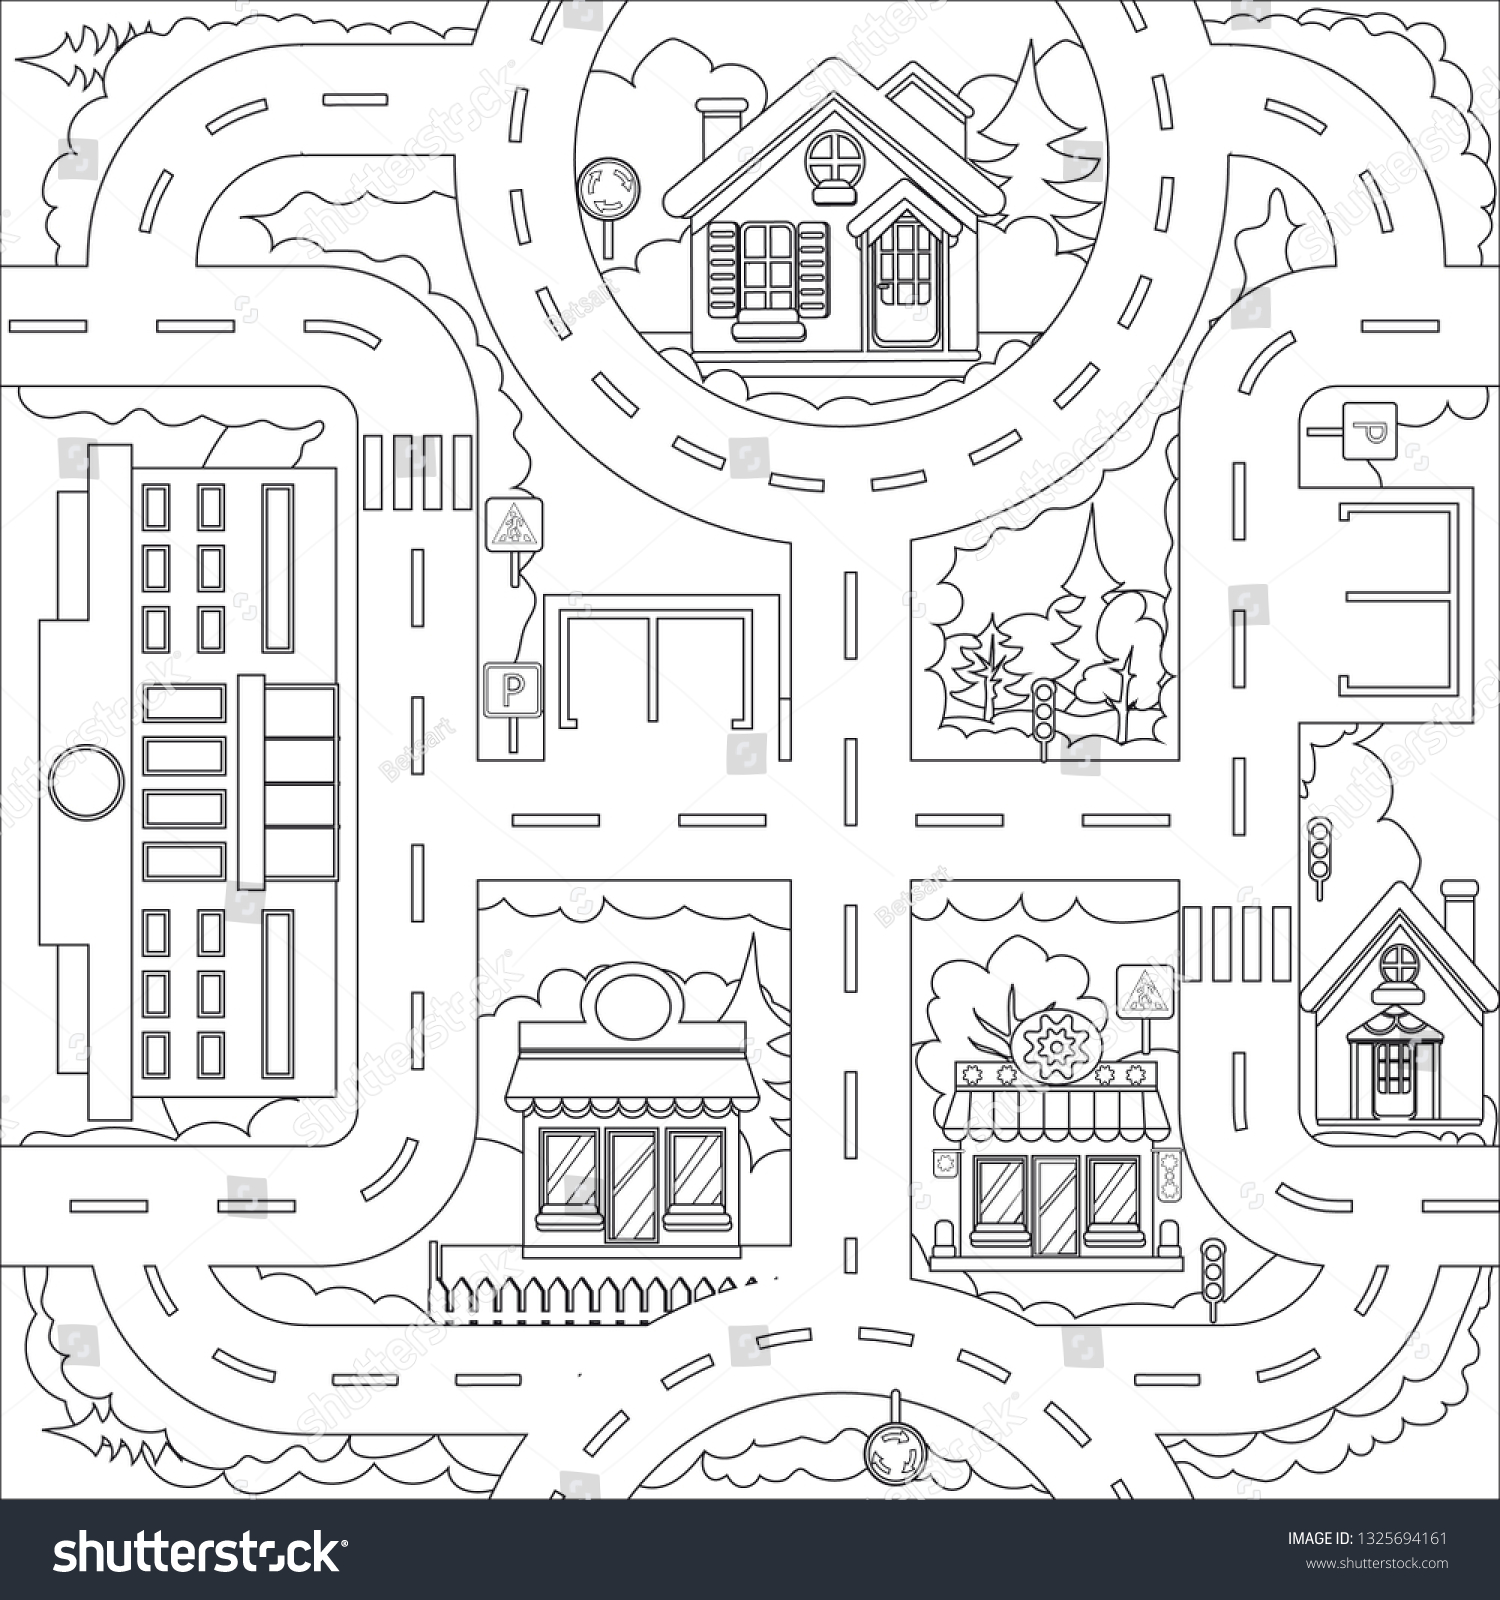 Printable Adult Wild West Town Coloring Pages - Coloring Home | 1600x1500